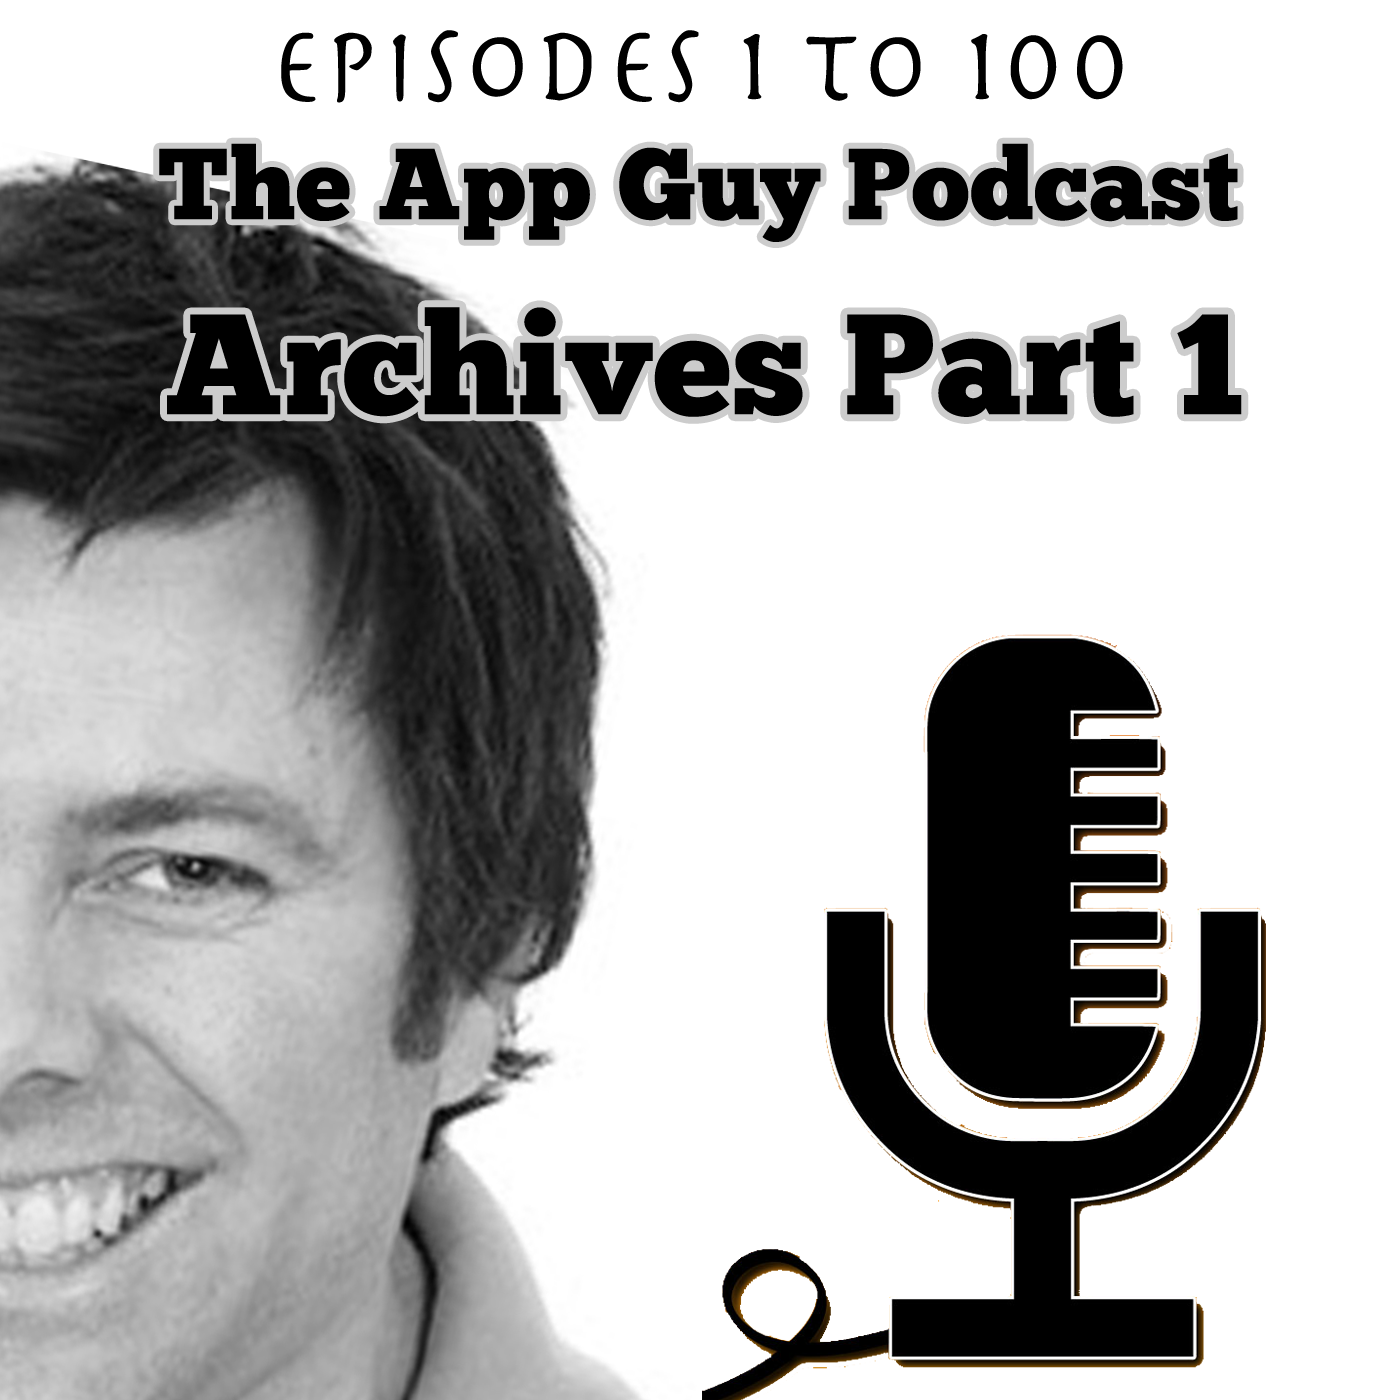 The App Guy Archive 1: The first 100 App Guy Podcast interviews with Paul Kemp - The App Guy